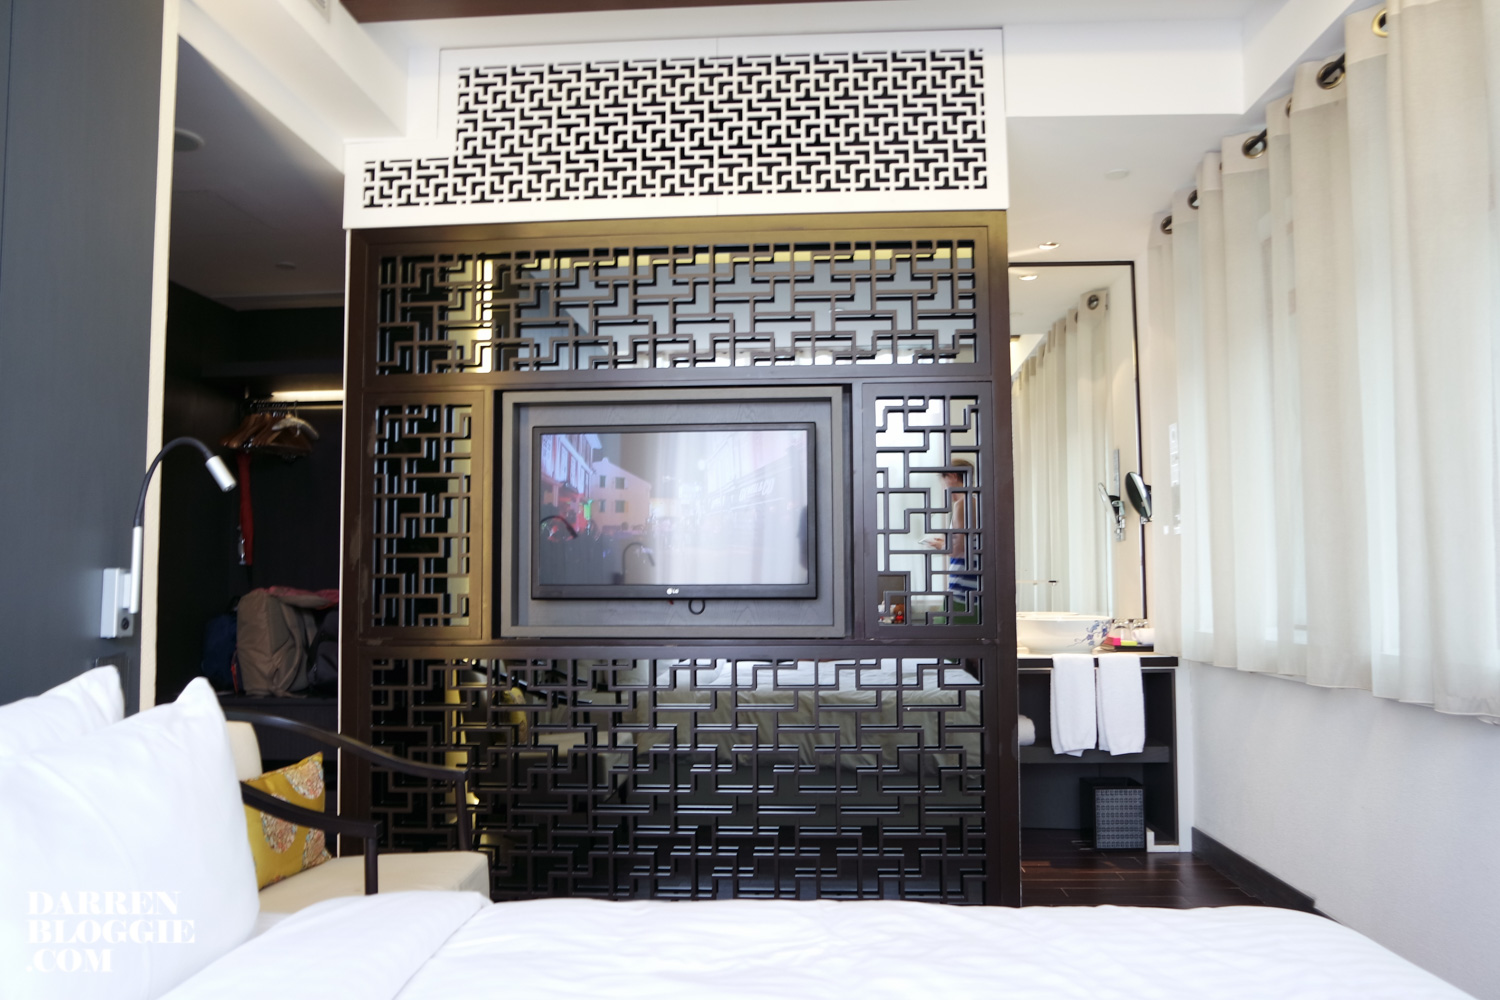 amoy_hotel_staycation-6898